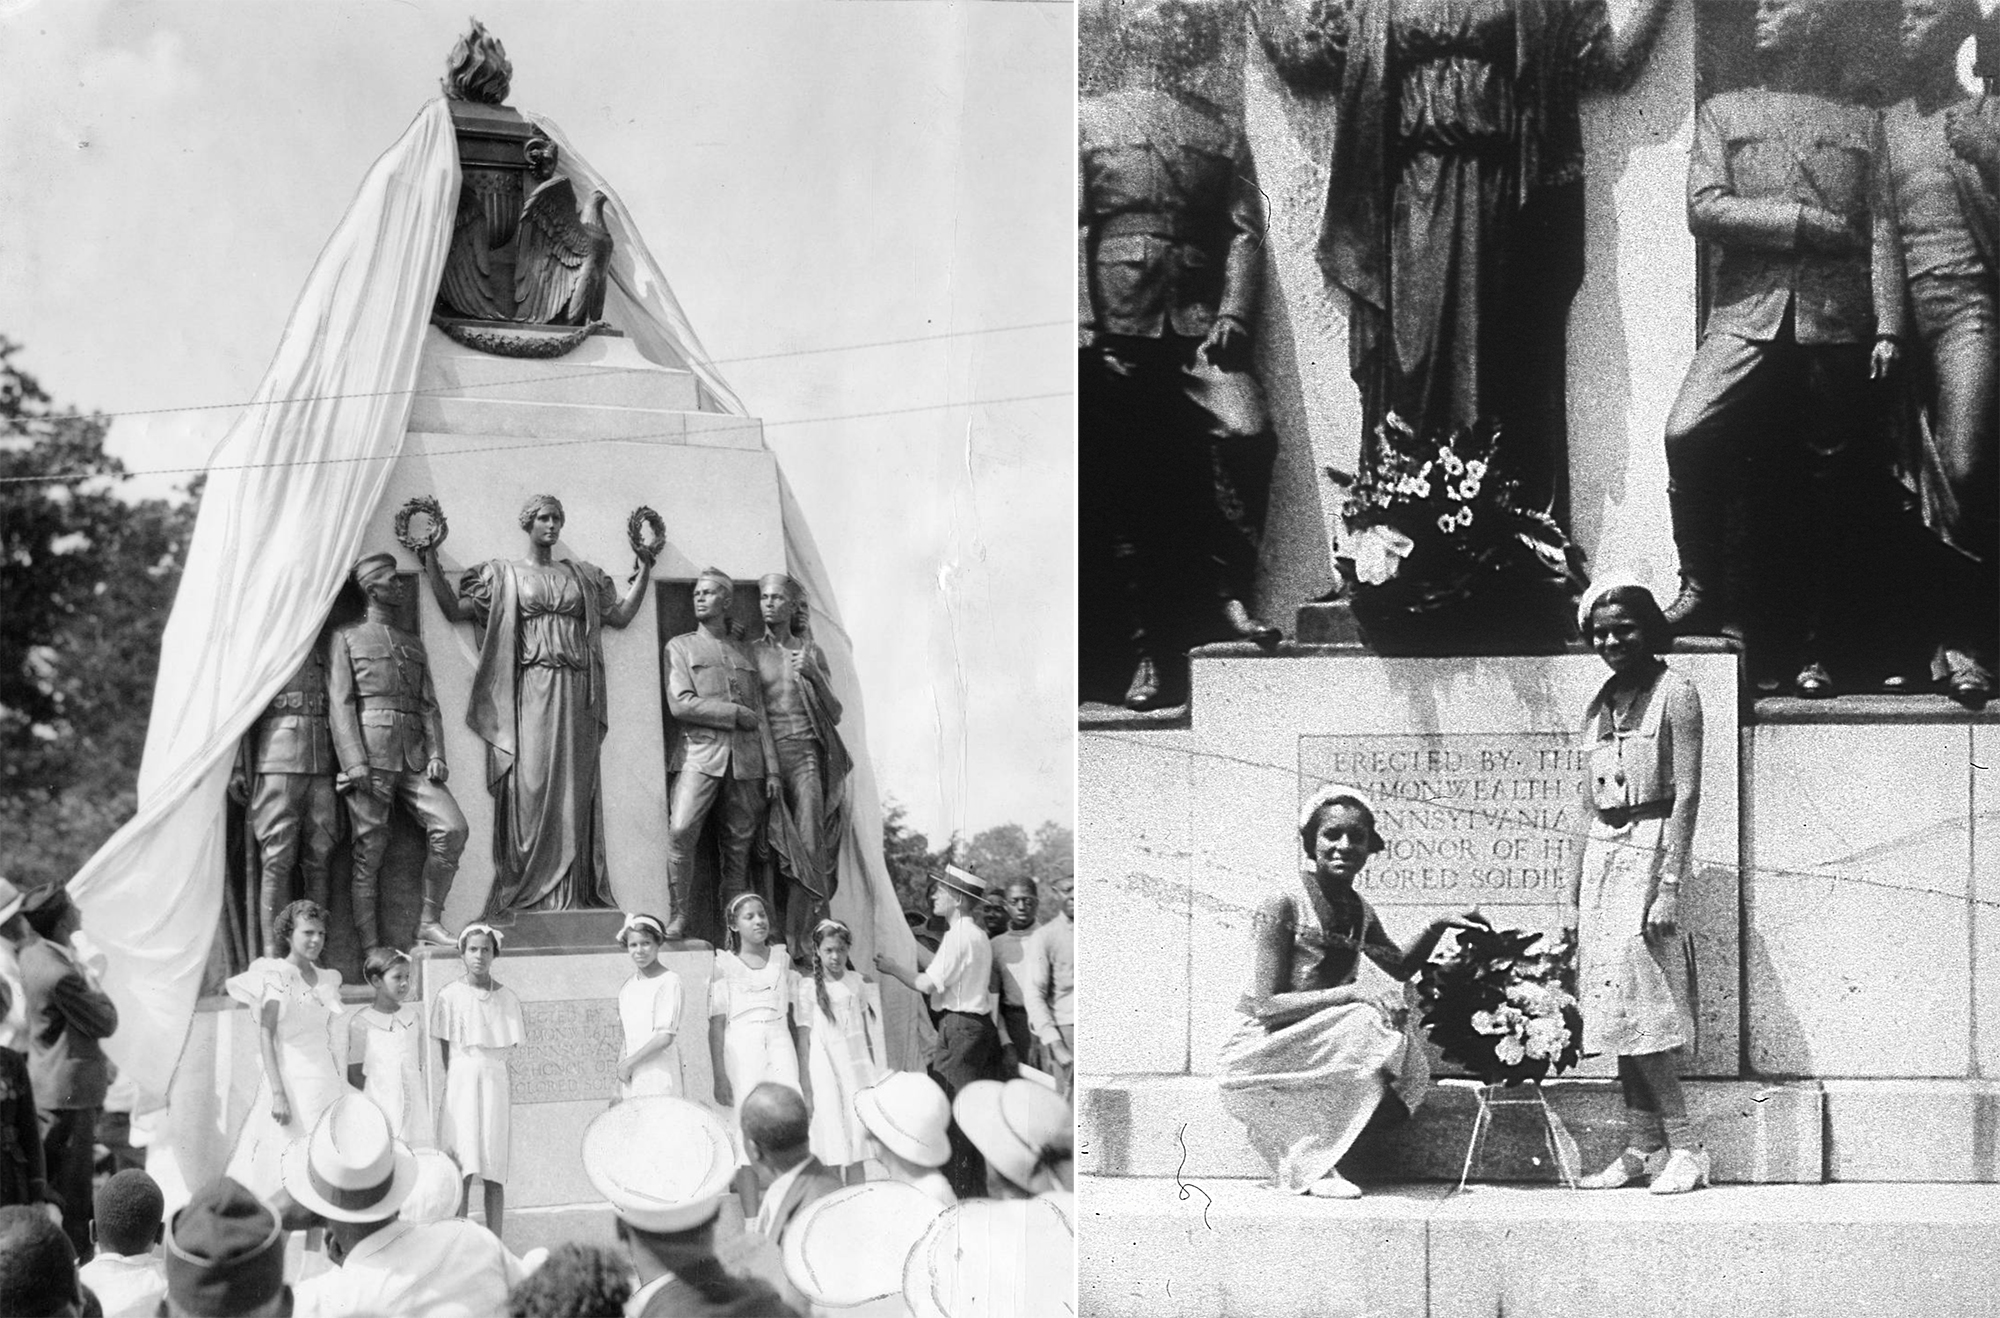 1934 unveiling of the All Wars Memorial in West Fairmount Park - black and white photo